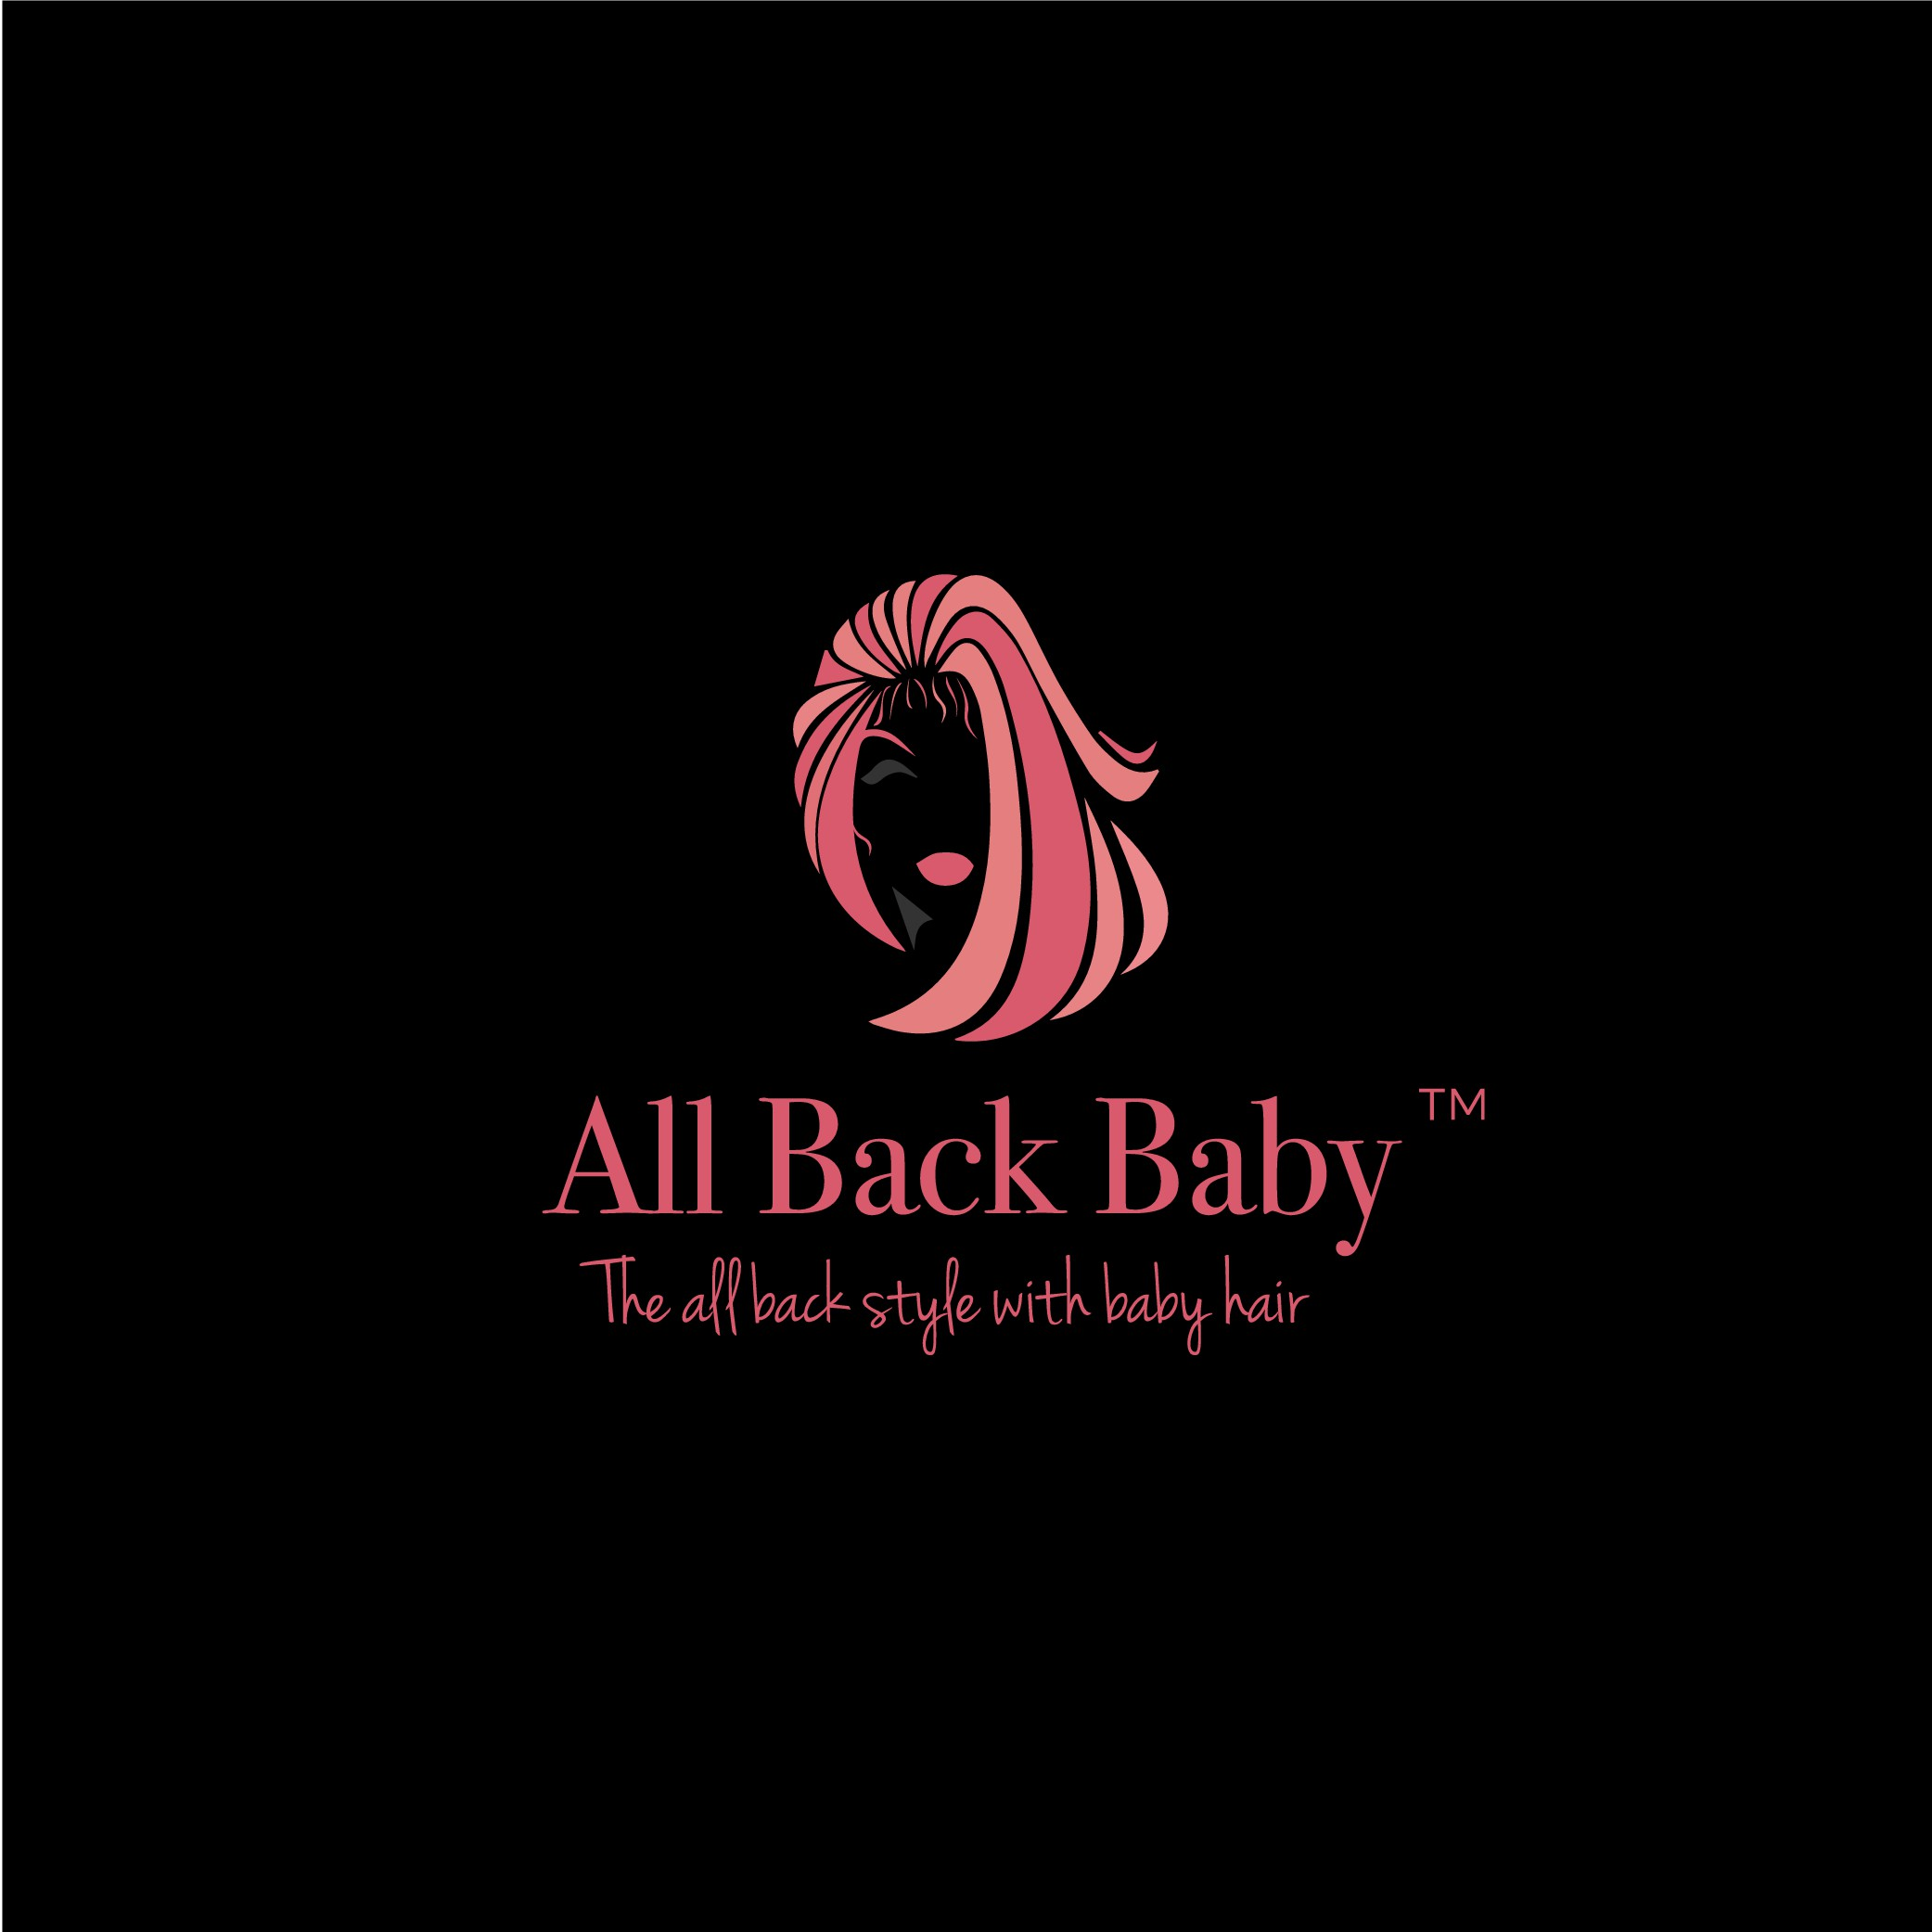 The All Back Baby